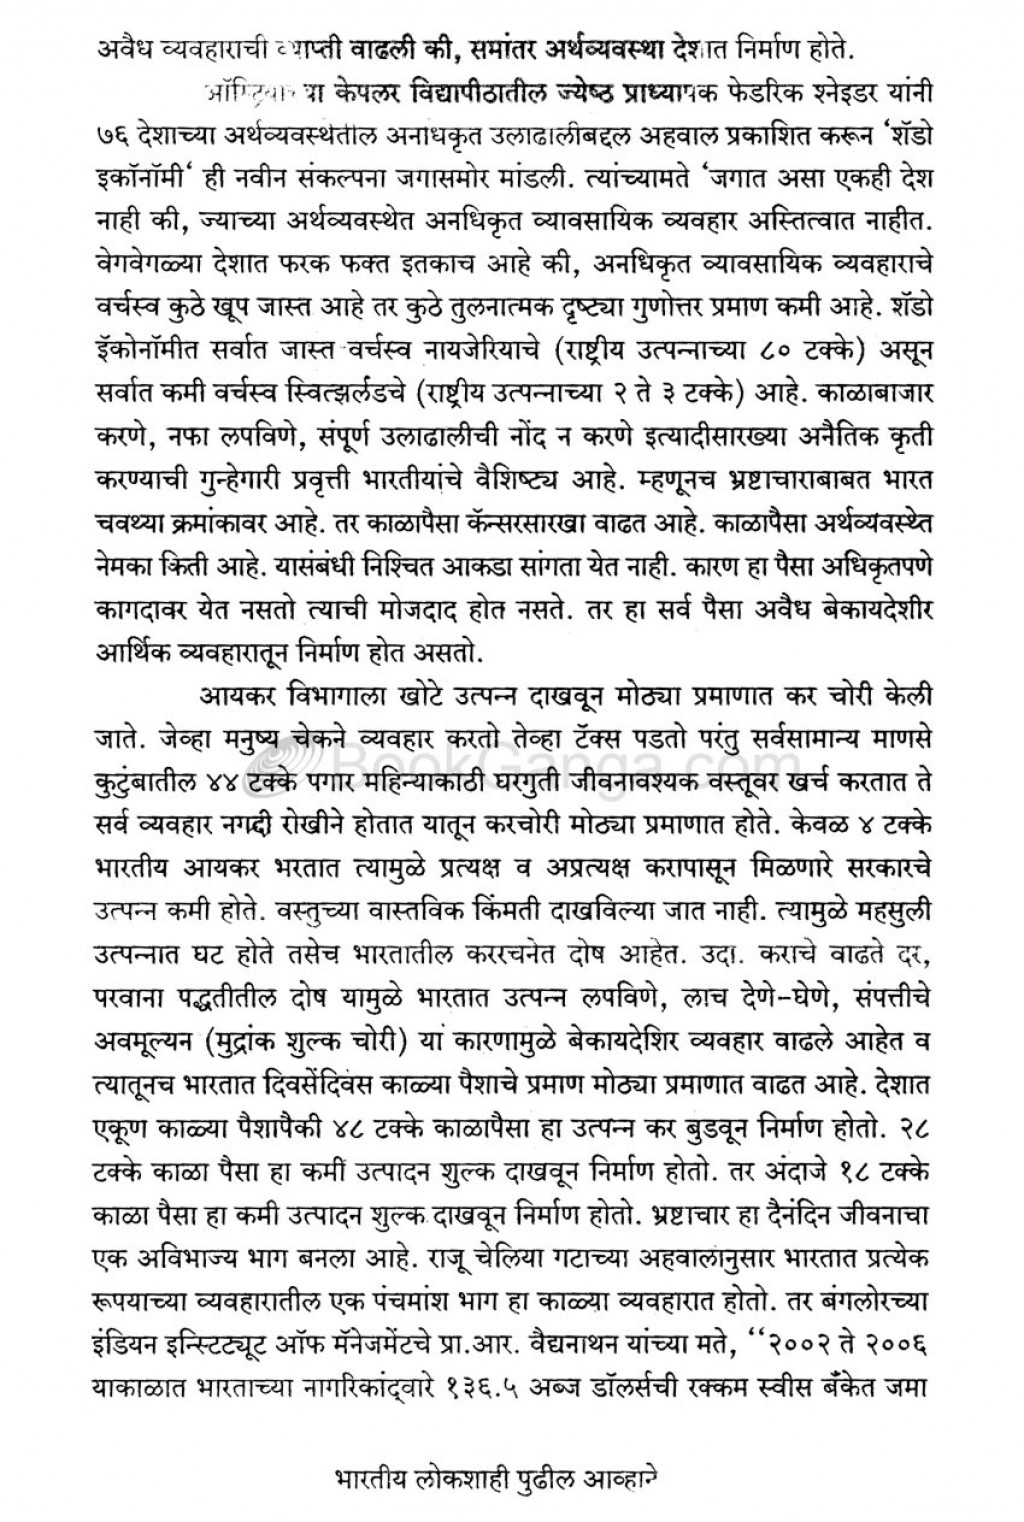 015 Marathi Essay On Rain Example Formidable Picnic In Rainy Season If Does Not Fall Short Day Large